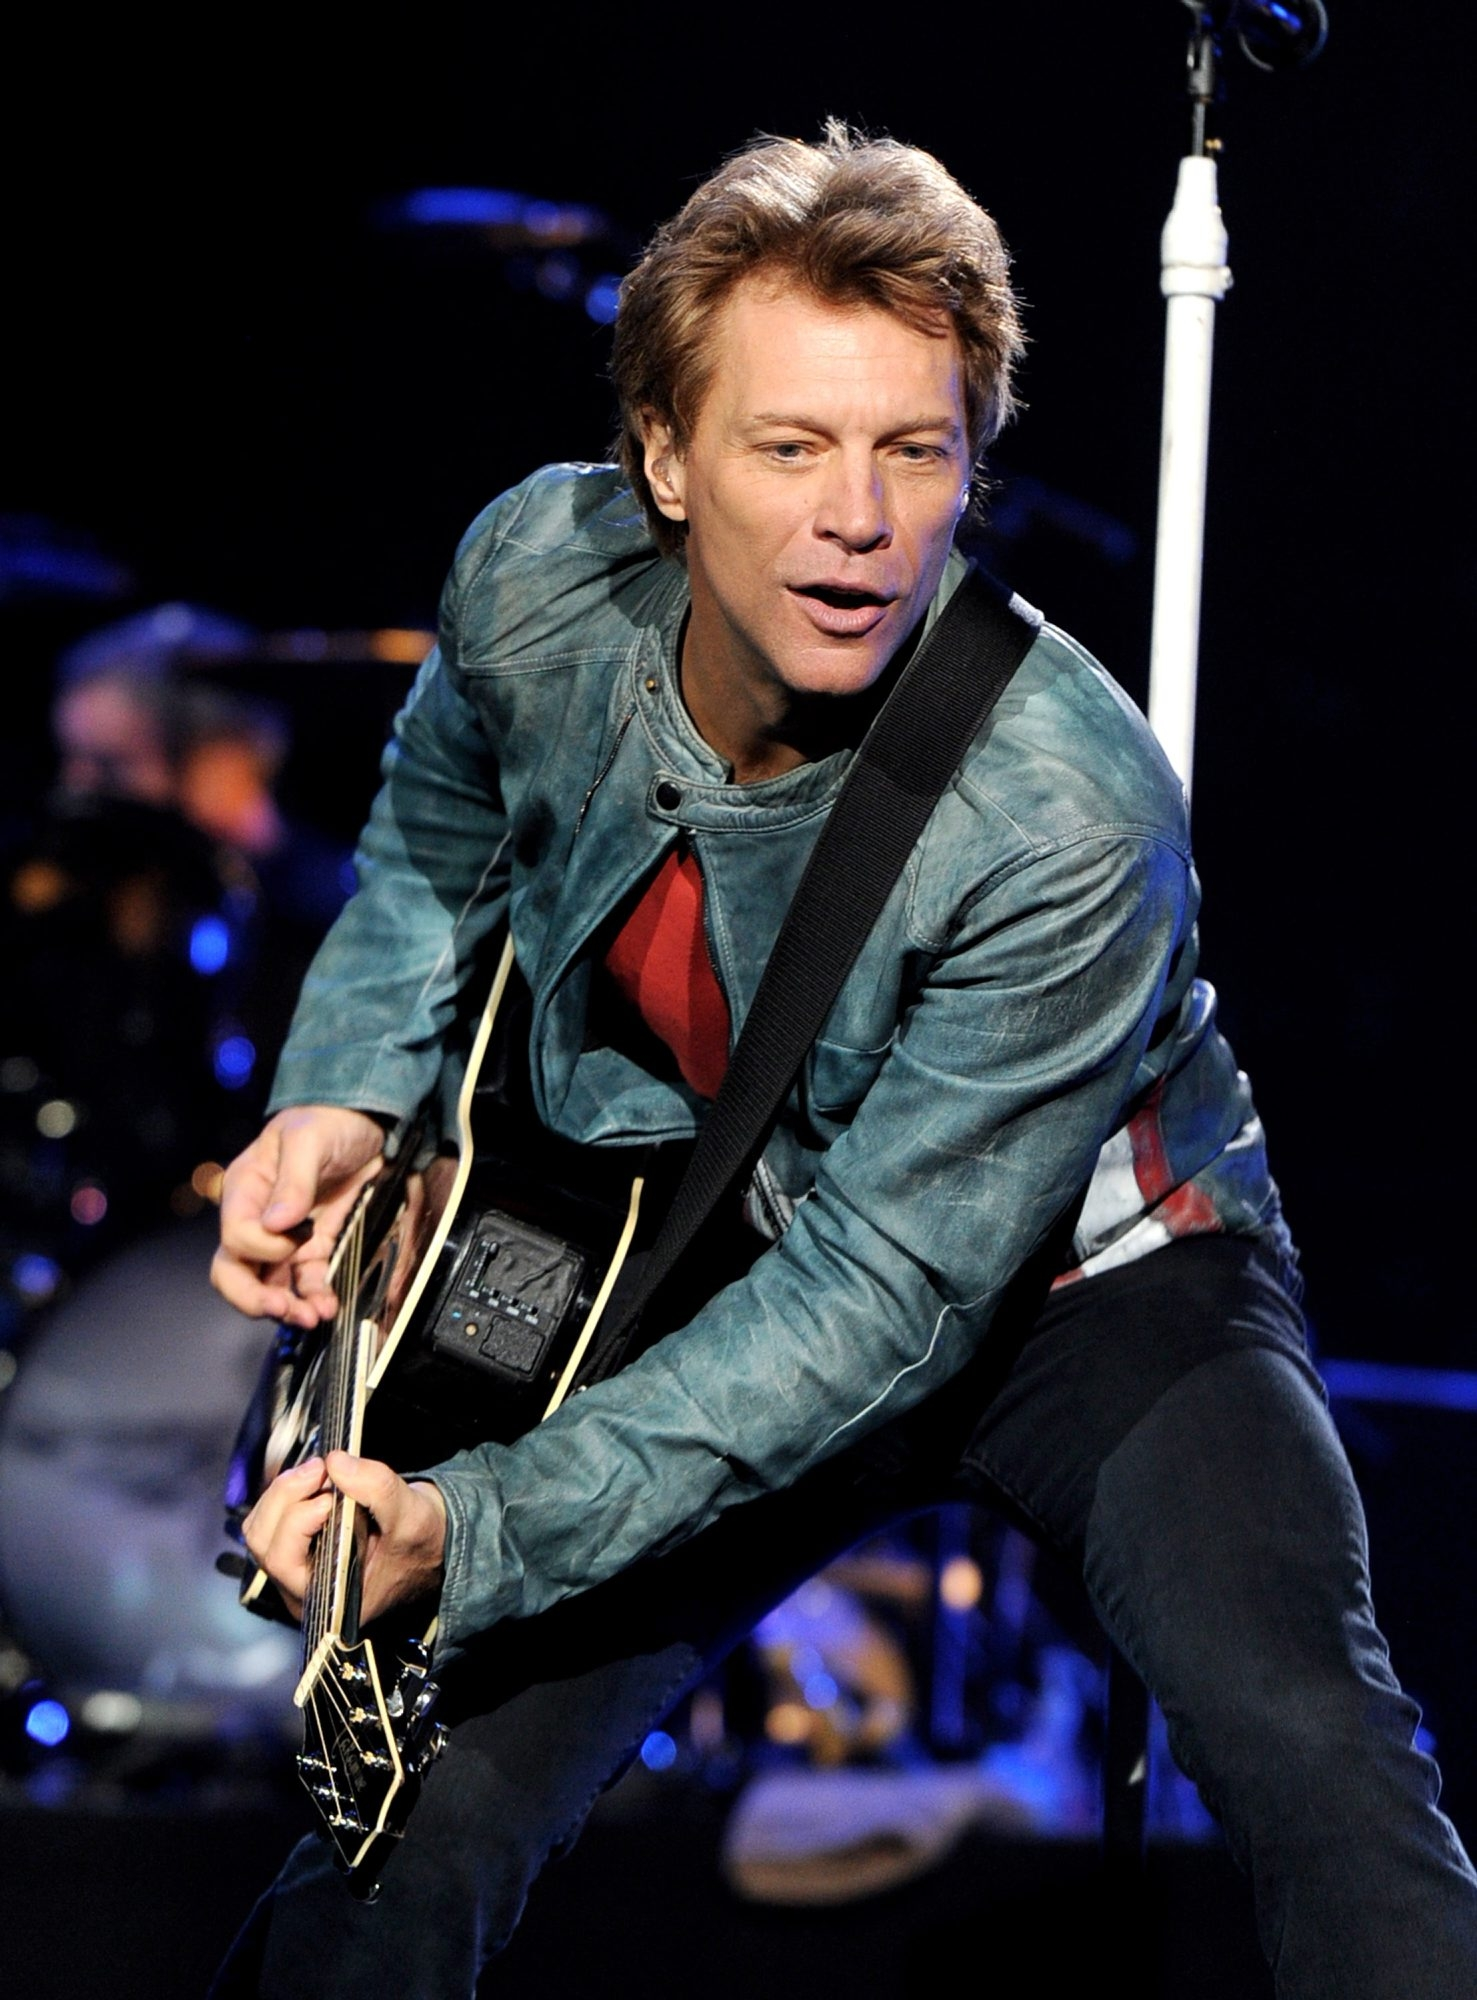 Jon Bon Jovi's first offer to buy Bills seen as financially lacking and short on WNY assurances.